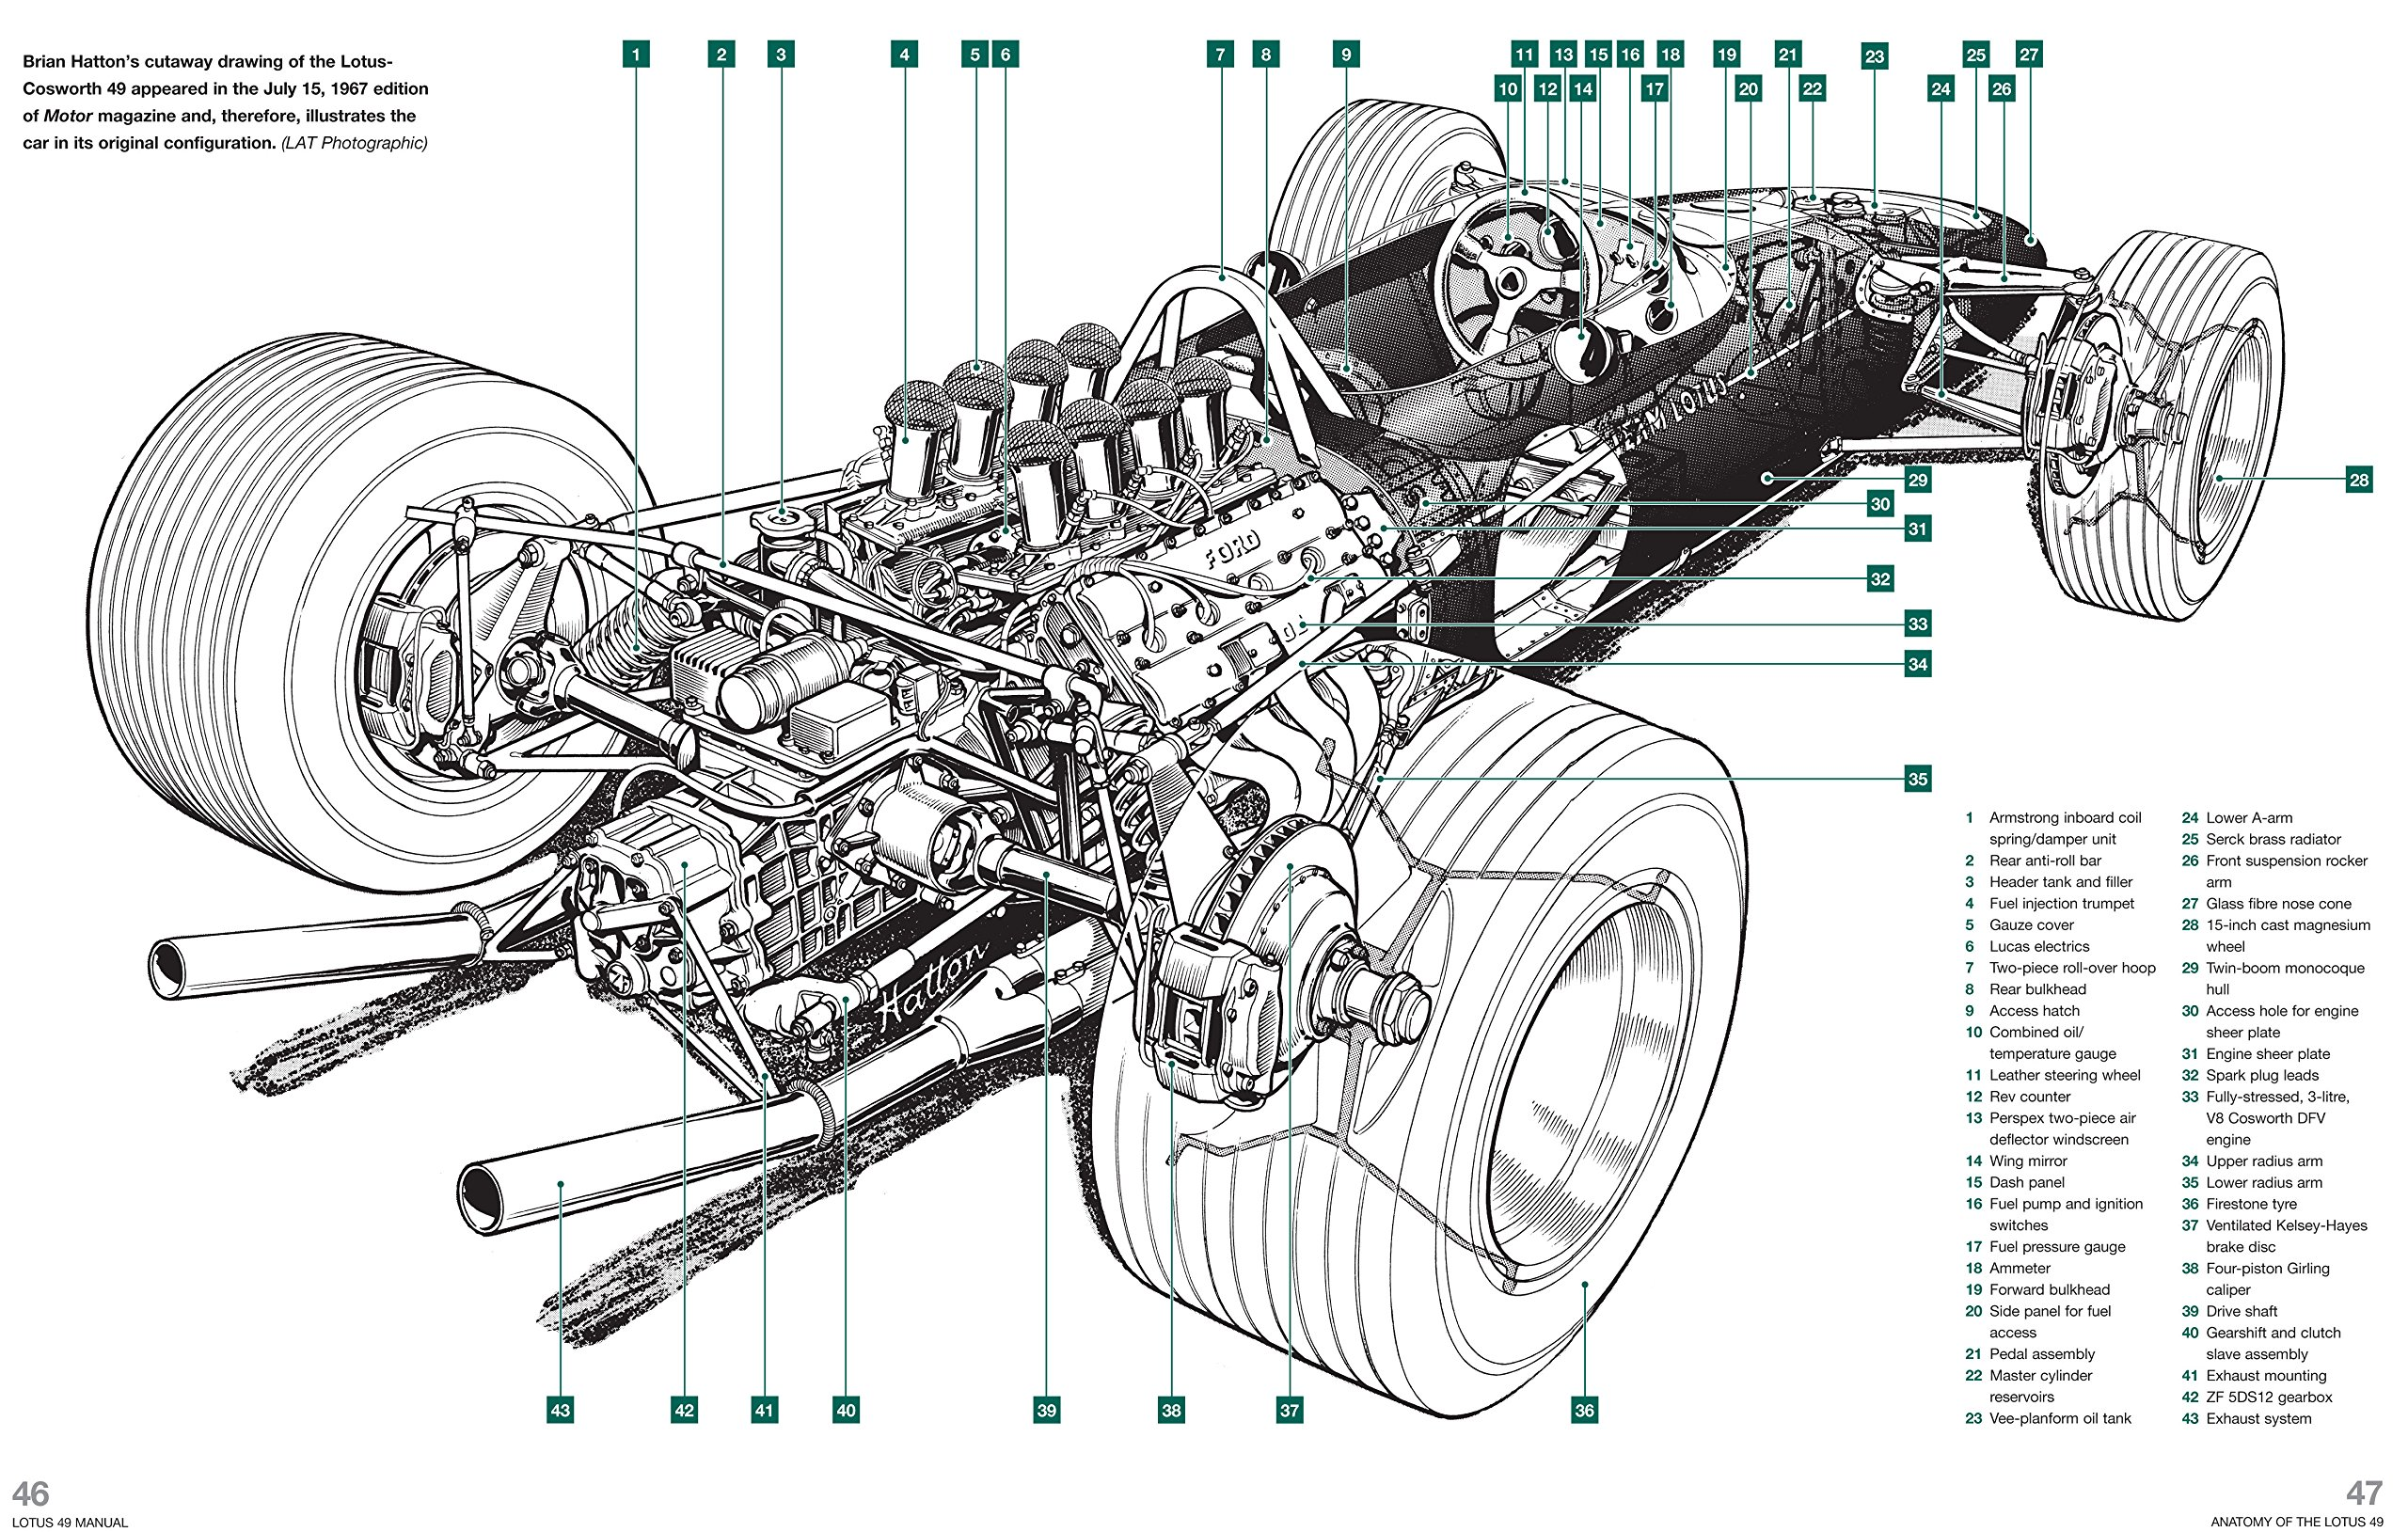 Lotus 49 Anatomy (1).JPG